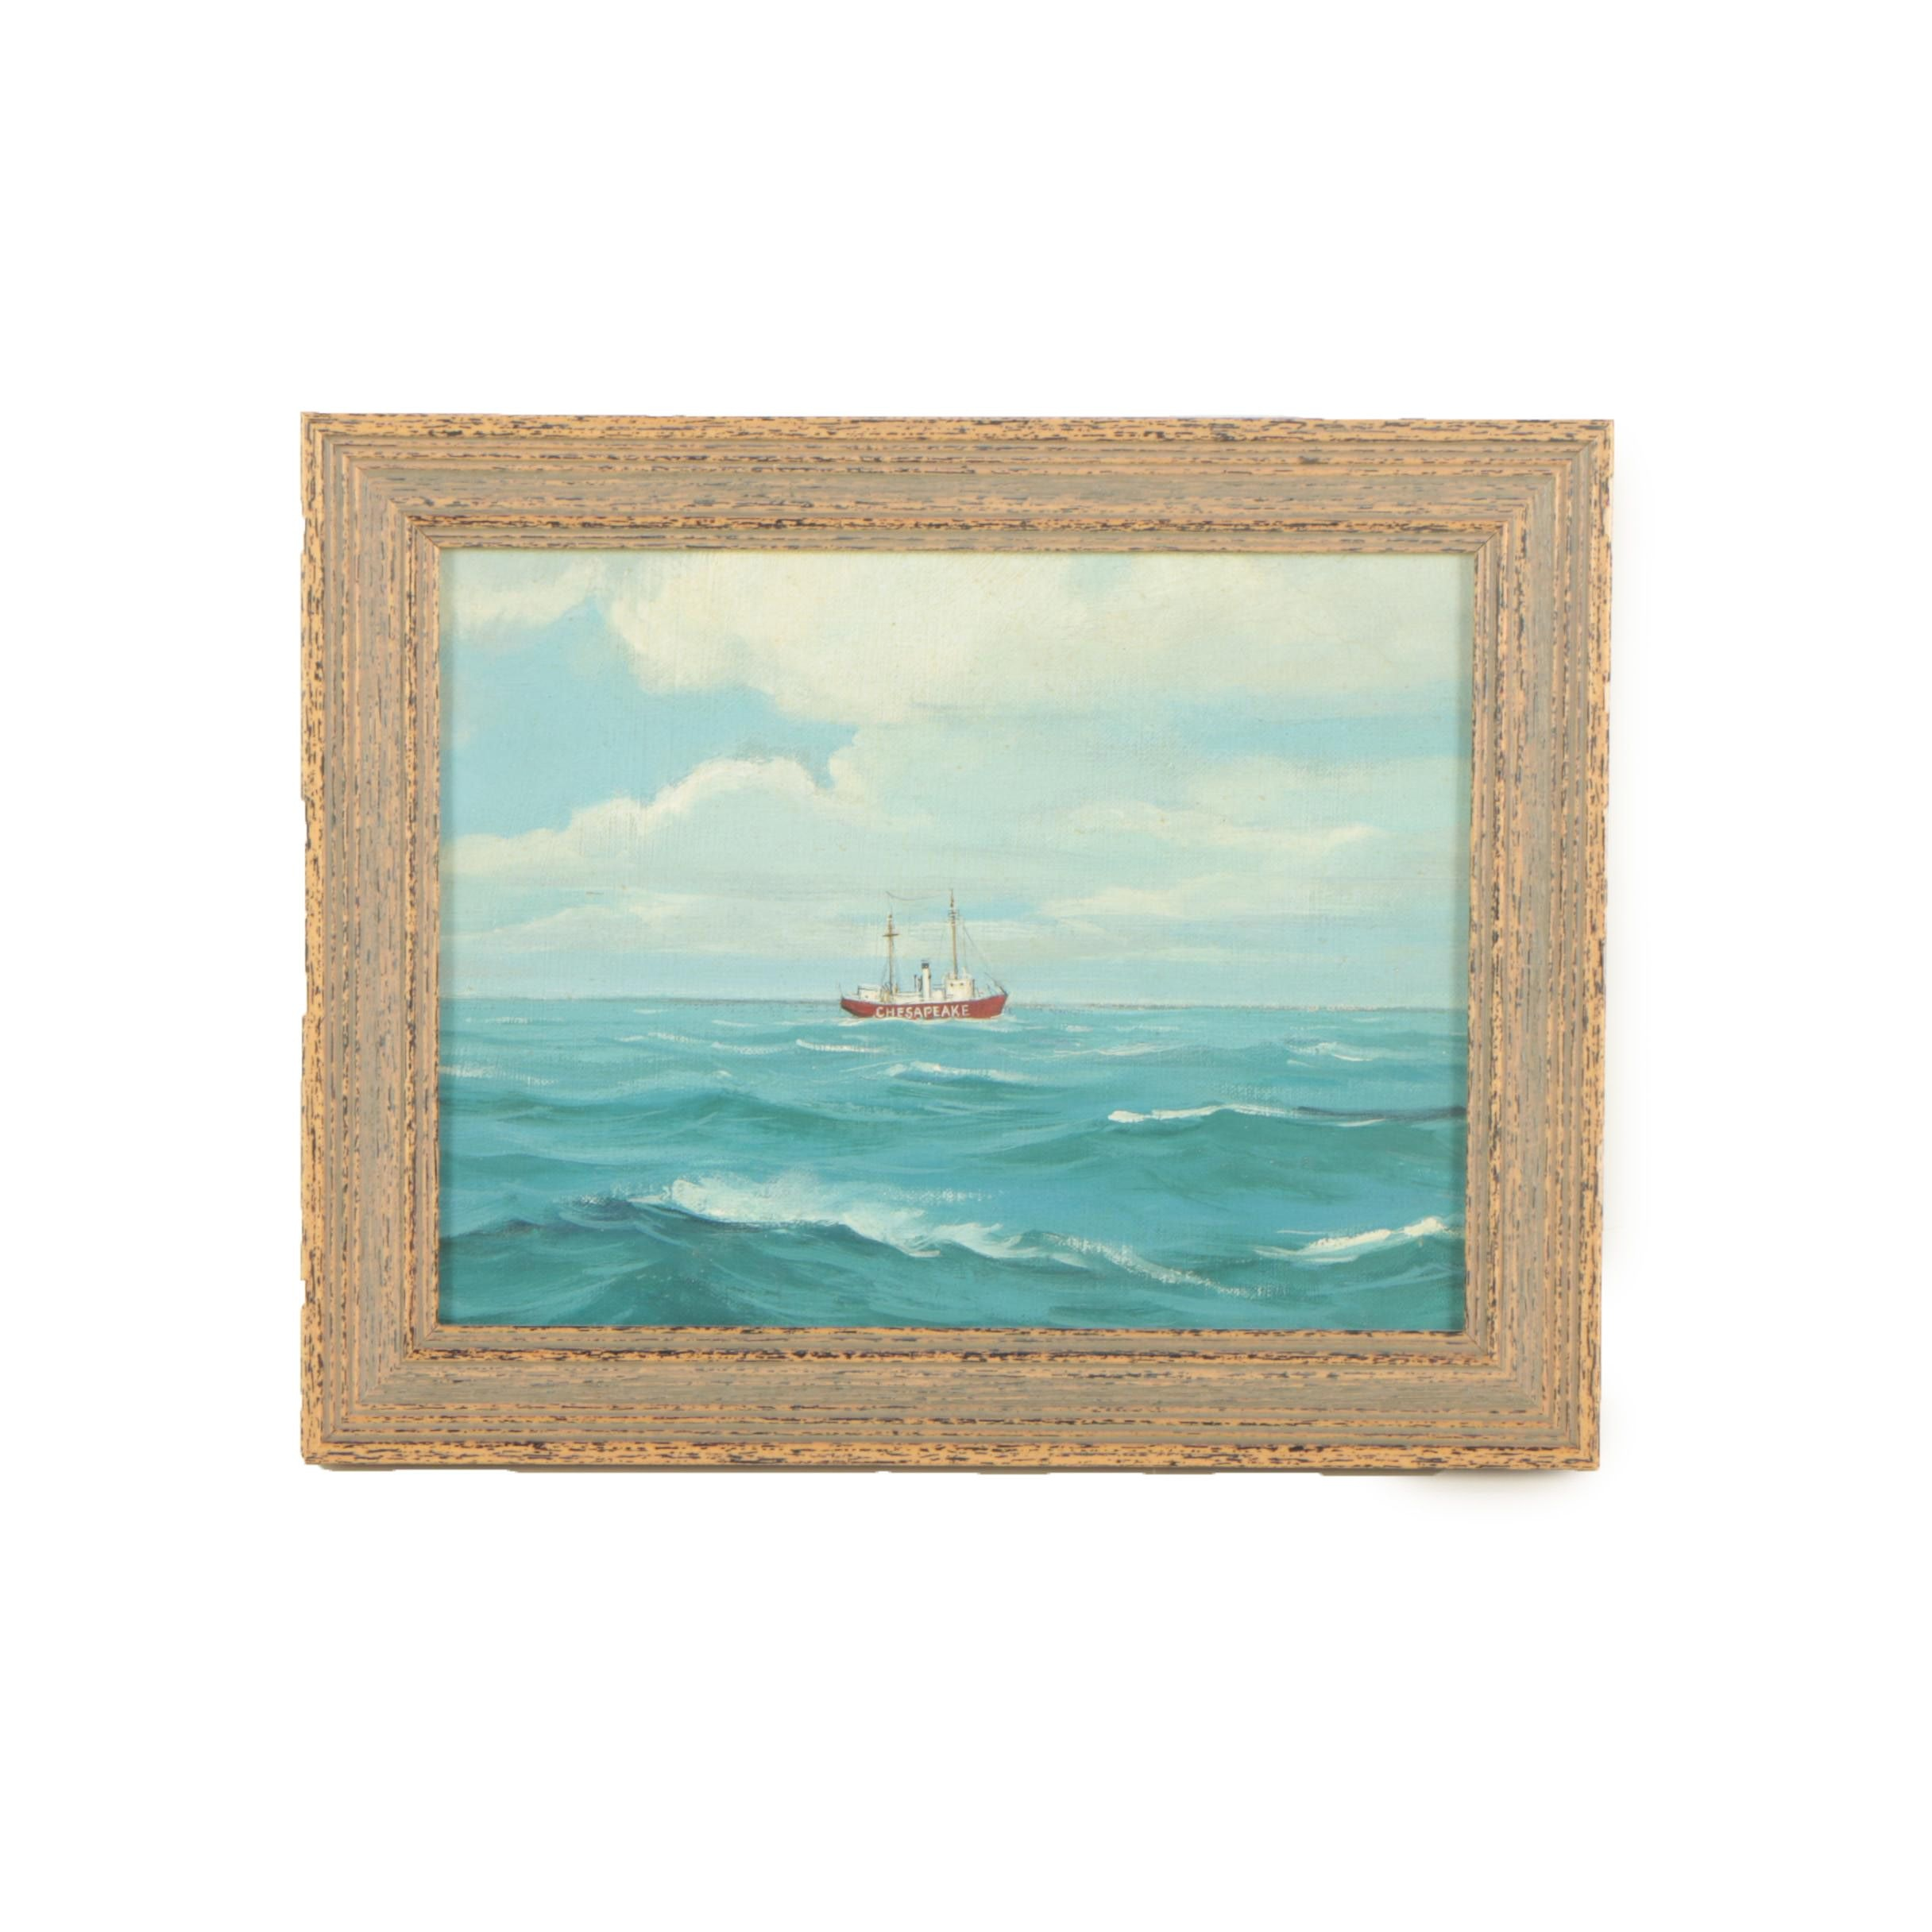 Miniature Oil Painting of a Steamship at Sea